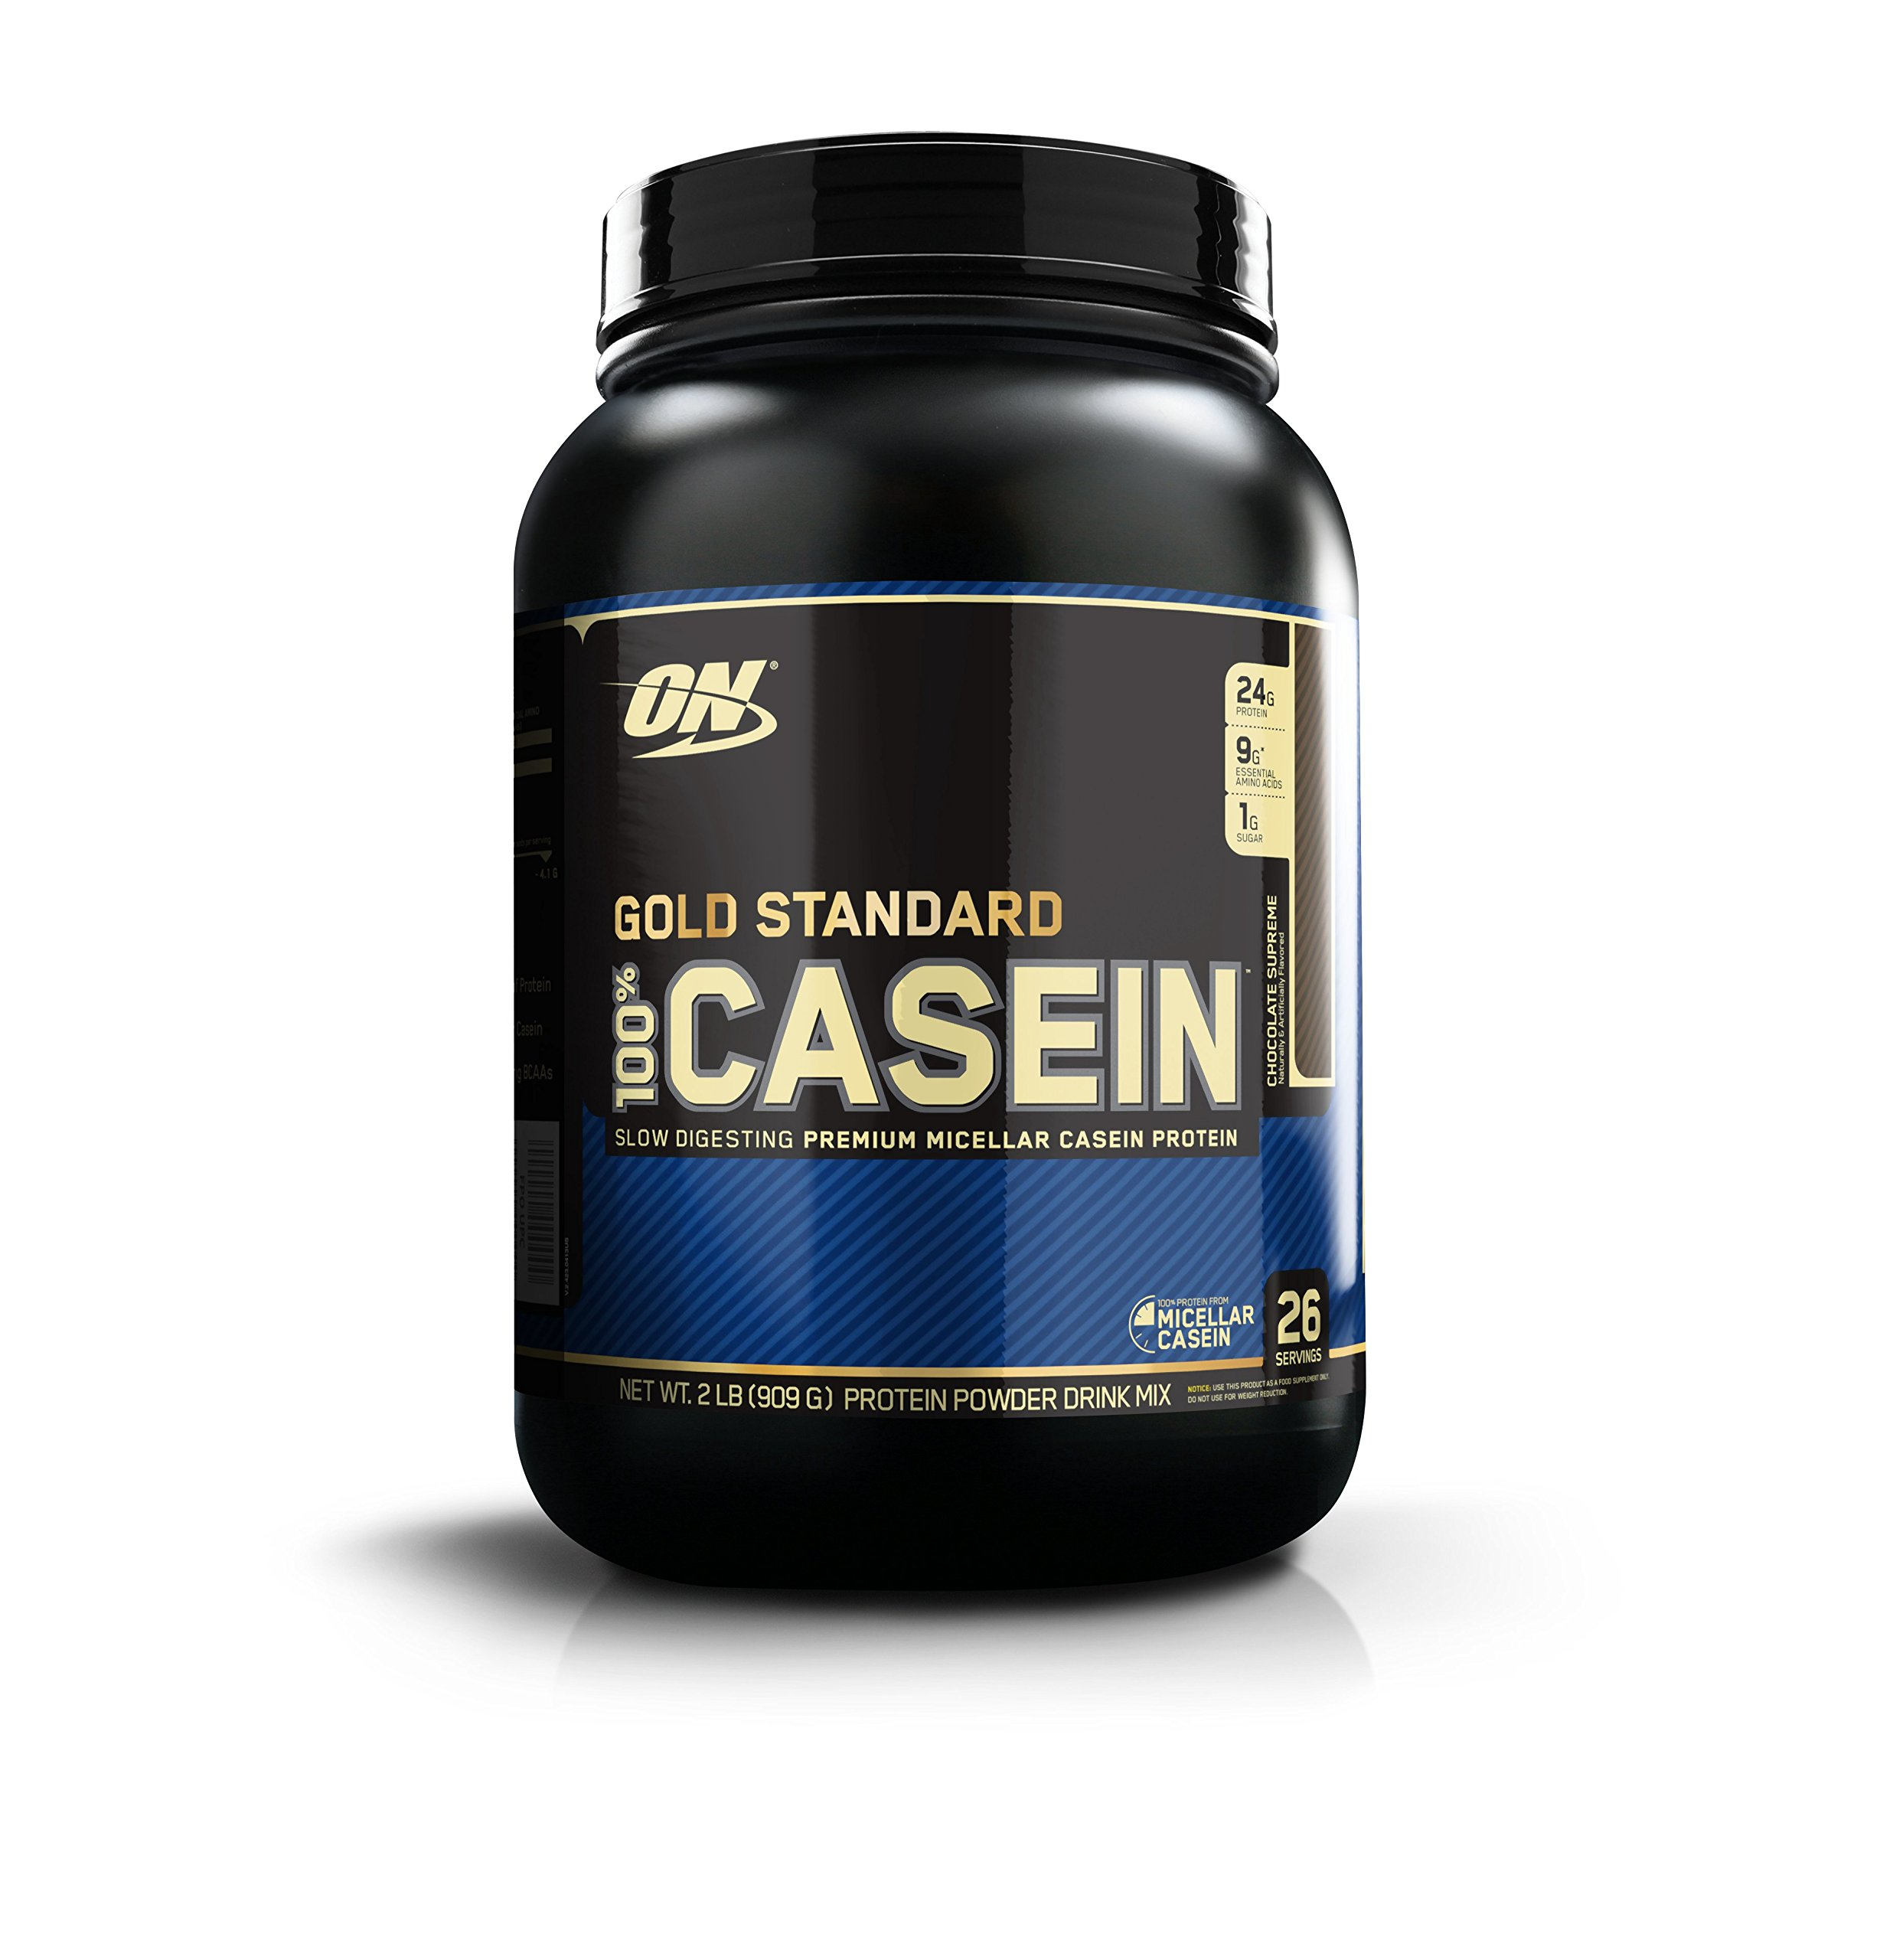 OPTIMUM NUTRITION GOLD STANDARD 100% Micellar Casein Protein Powder, Slow Digesting, Helps Keep You Full, Overnight Muscle Recovery, Chocolate Supreme, 2 Pound